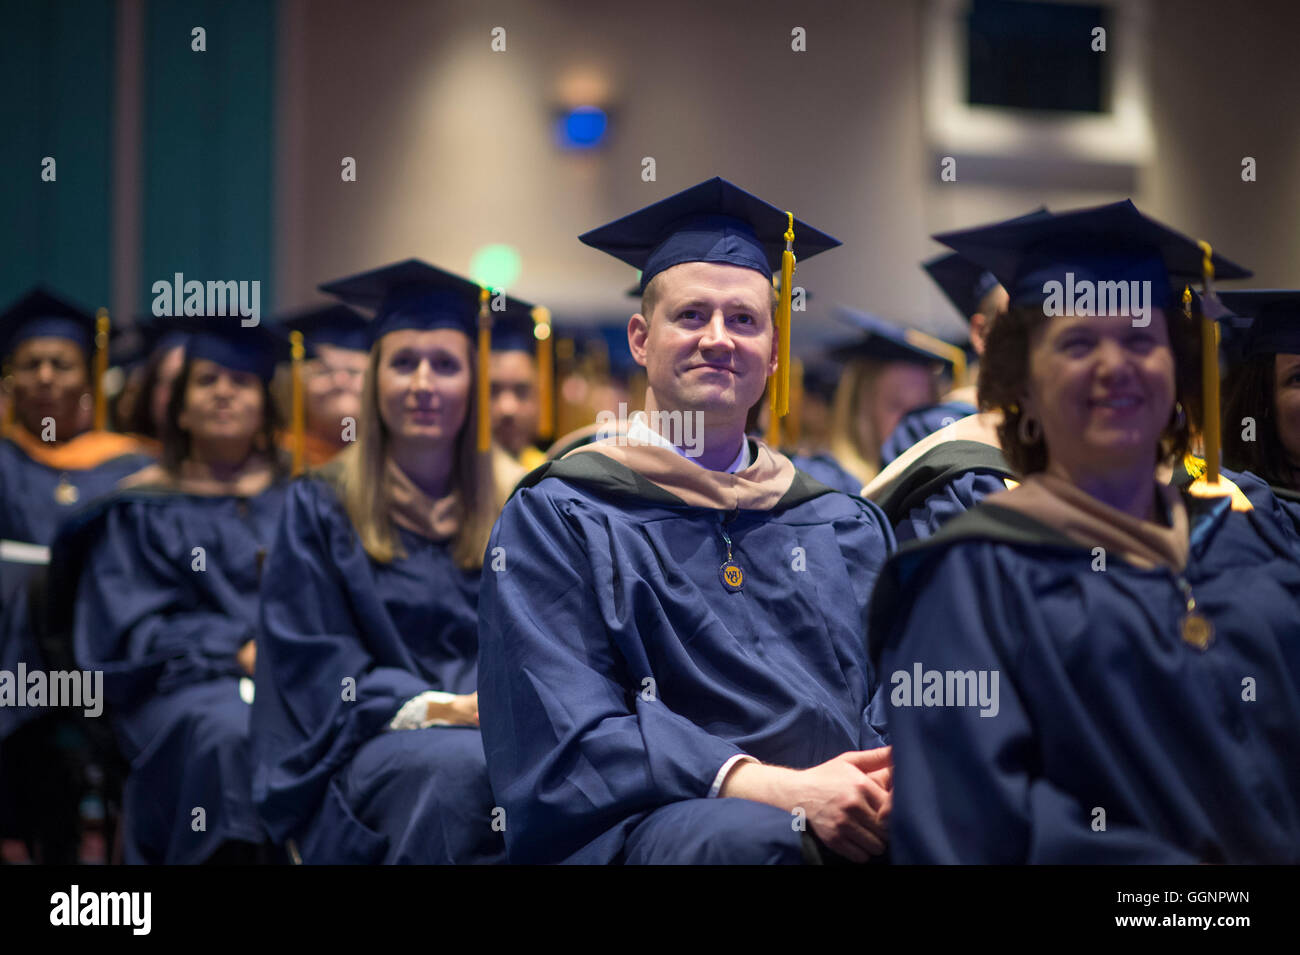 Graduation candidates in caps and gowns wait to receive diplomas at Western Governors University commencement ceremony - Stock Image